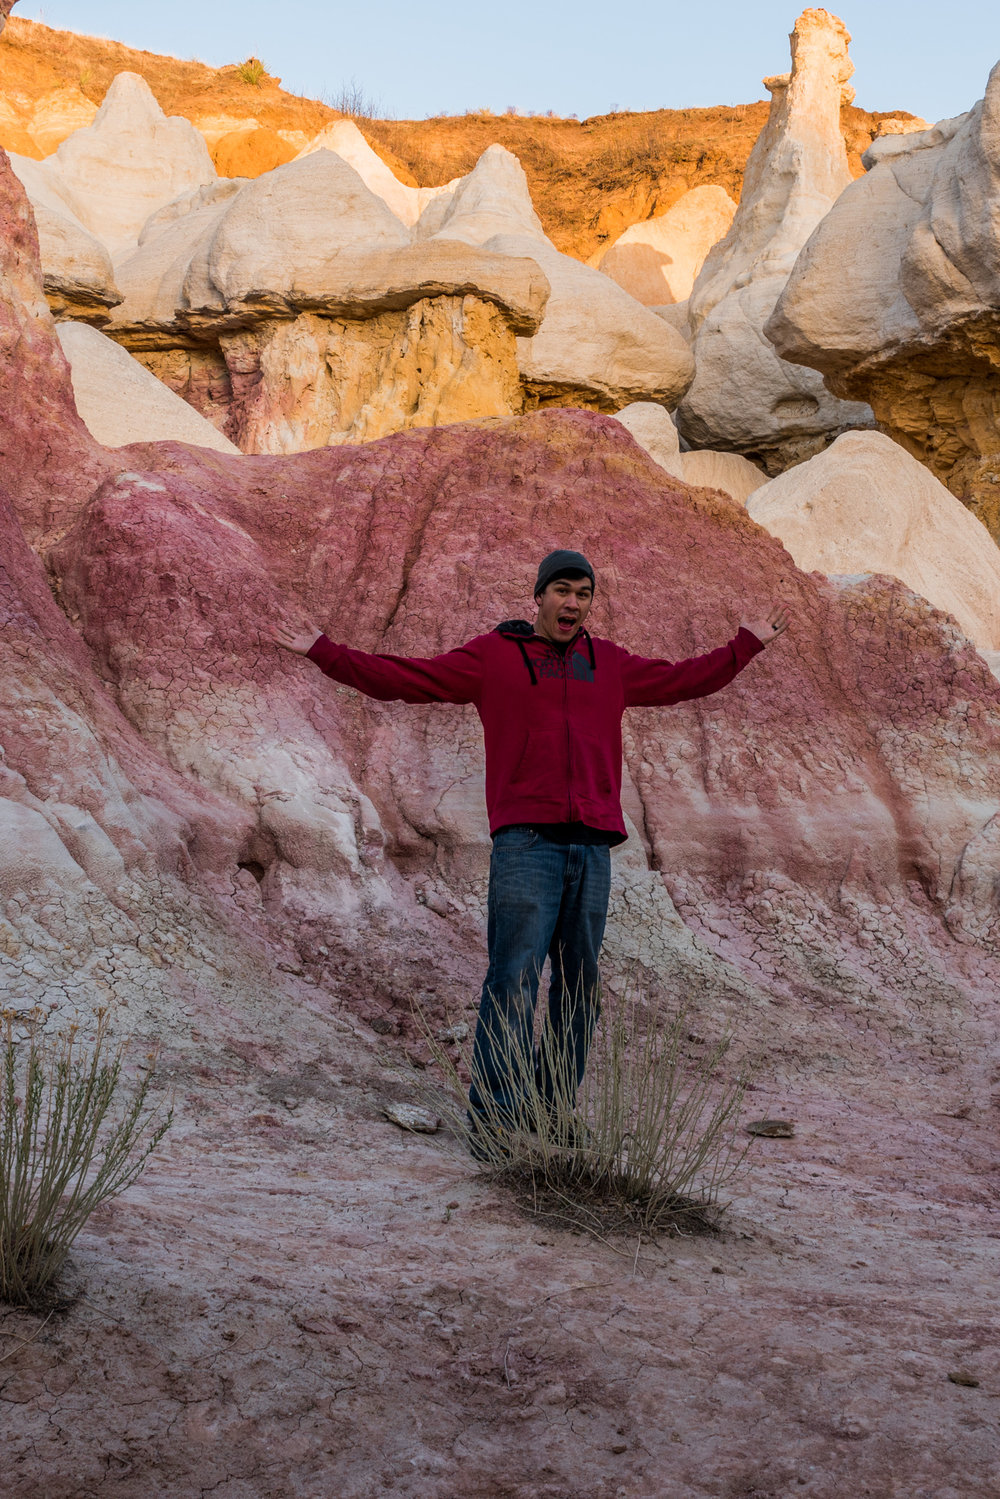 Me having fun at the Paint Mines posing for the camera.